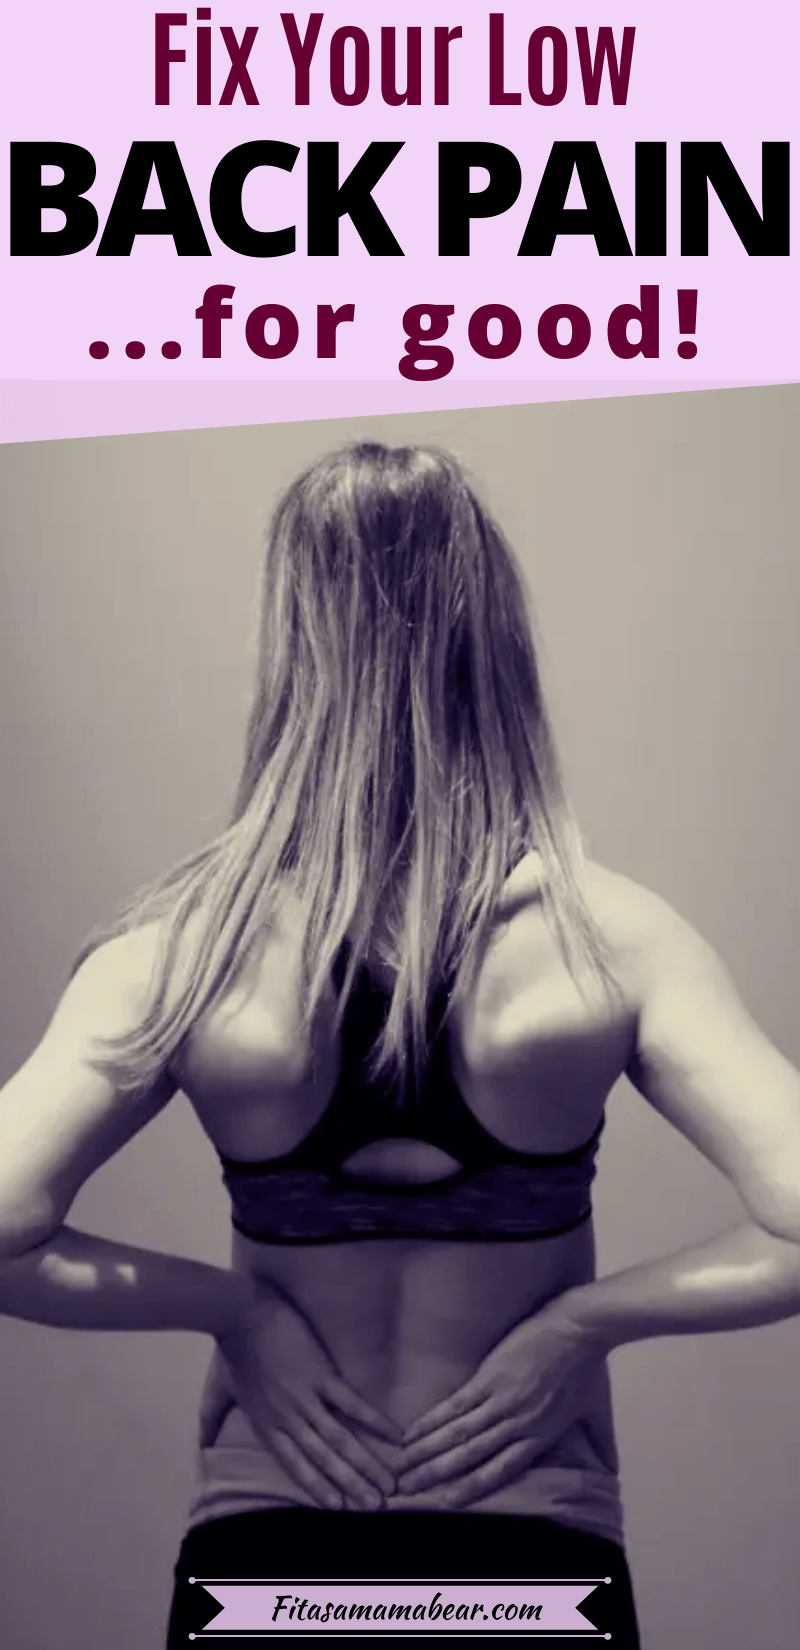 Featured image with text: three images, the first of a woman holding her low back and the other two of exercises to relieve back pain